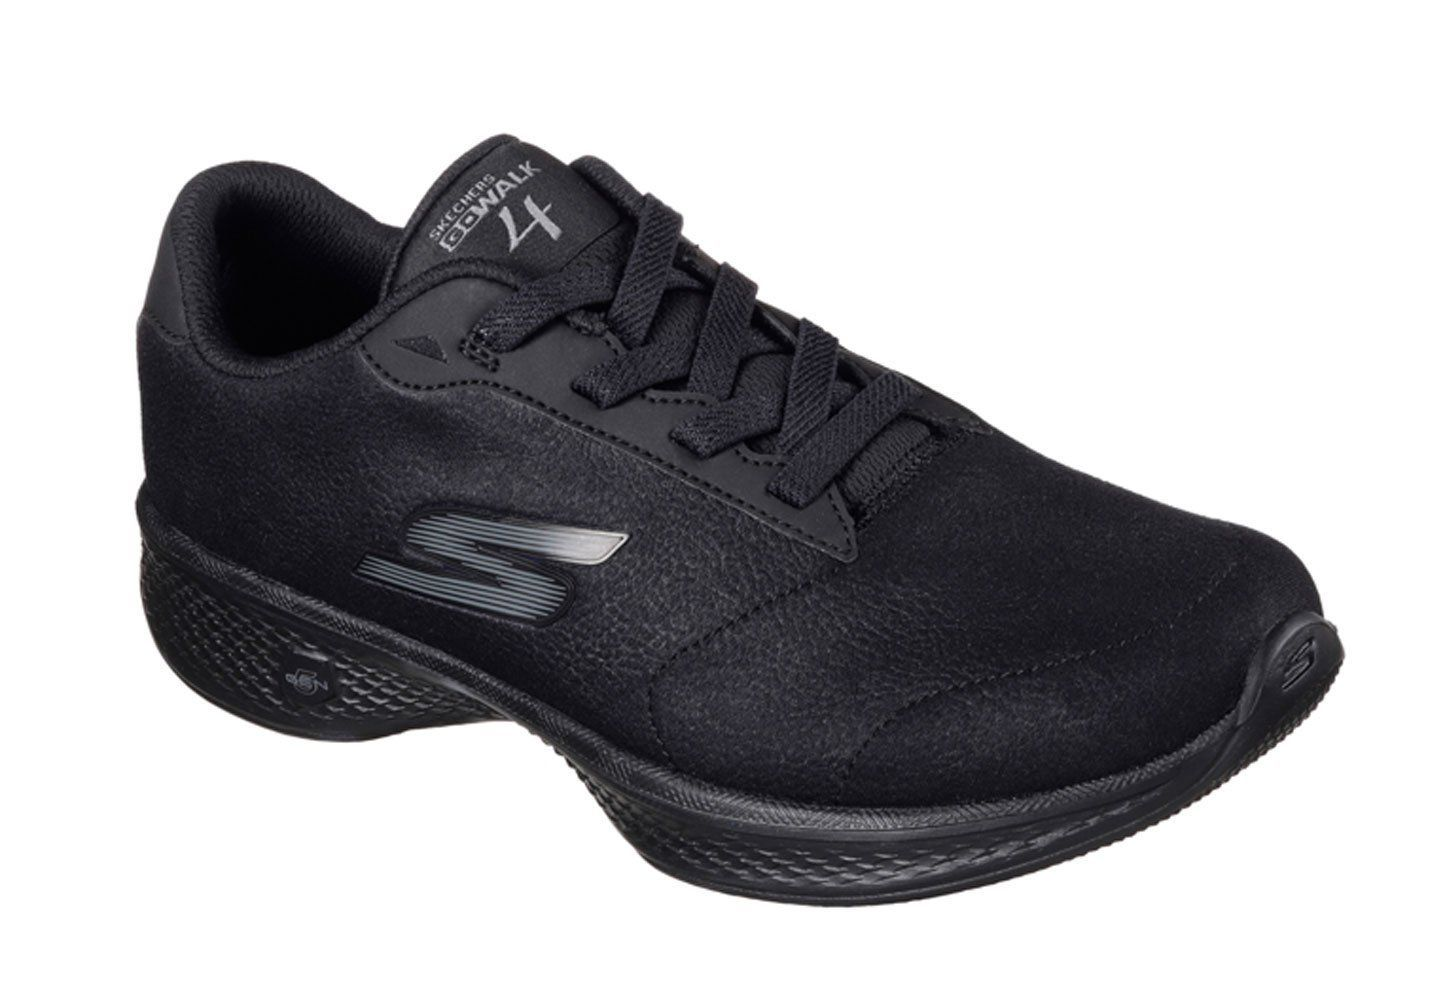 68a4a1f06d54 Skechers GOwalk 4 Premier Black Walking Shoes